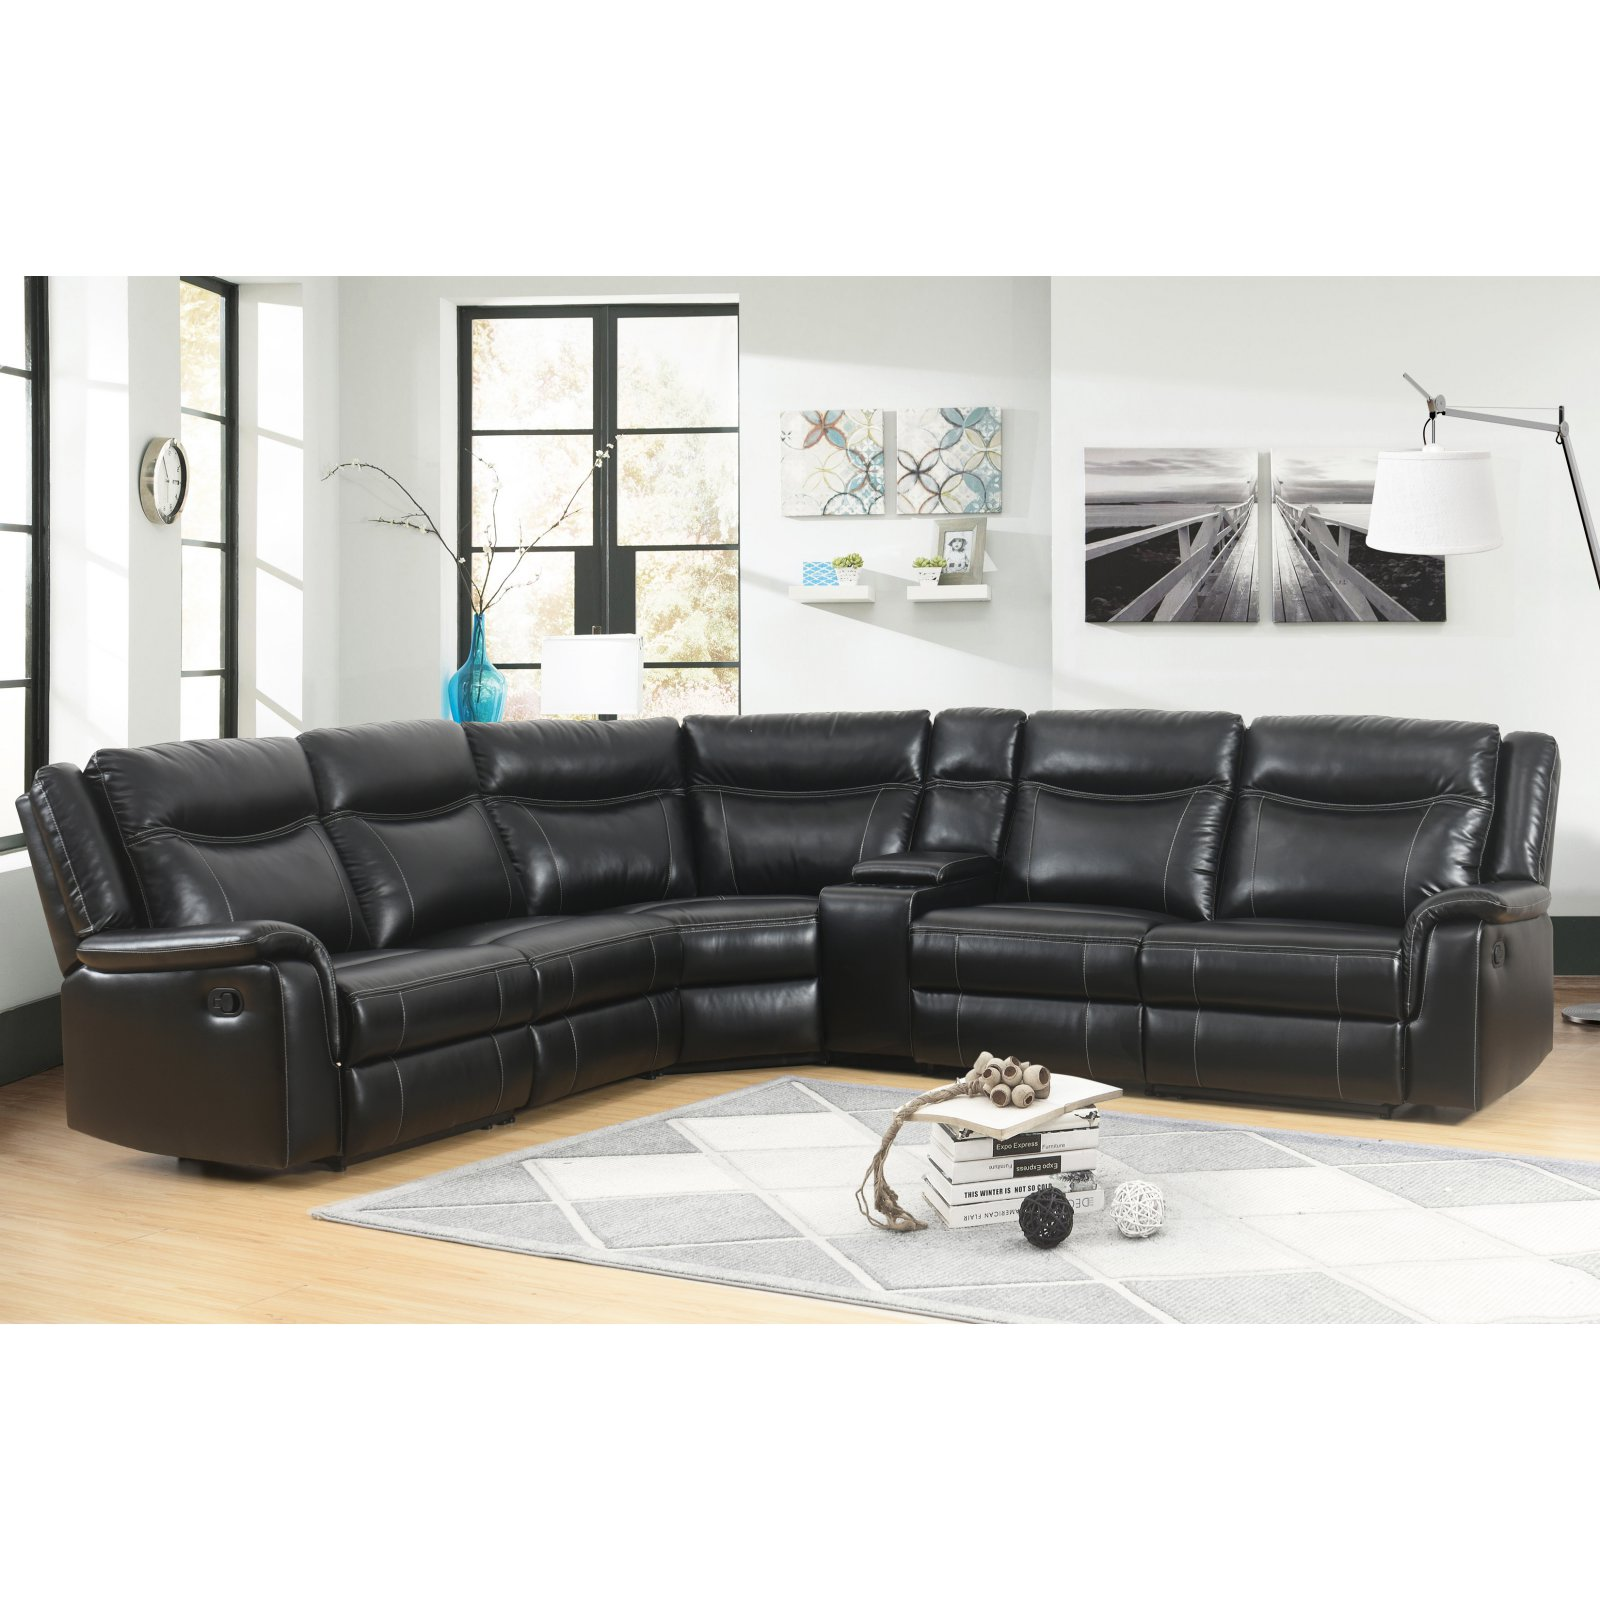 Best Abbyson Living Garrett Reclining Sectional With Console In 400 x 300